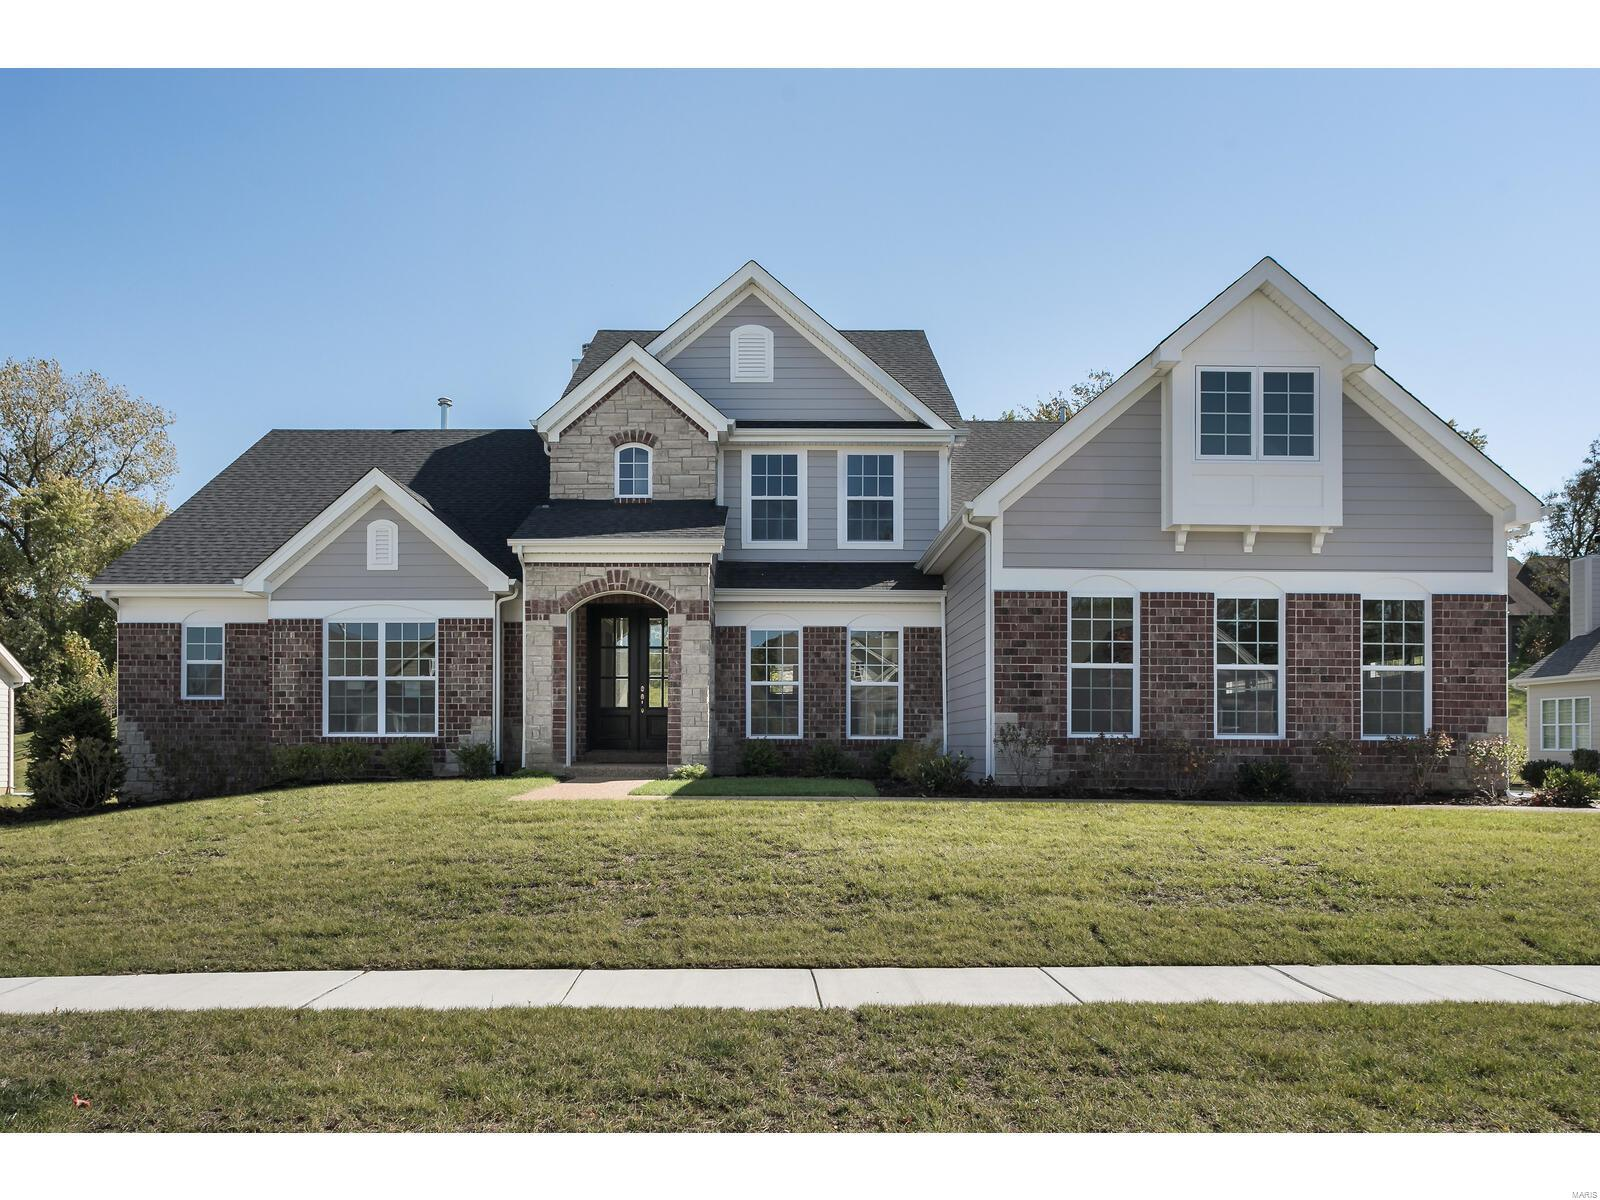 14762 Schoettler Grove Property Photo - Chesterfield, MO real estate listing